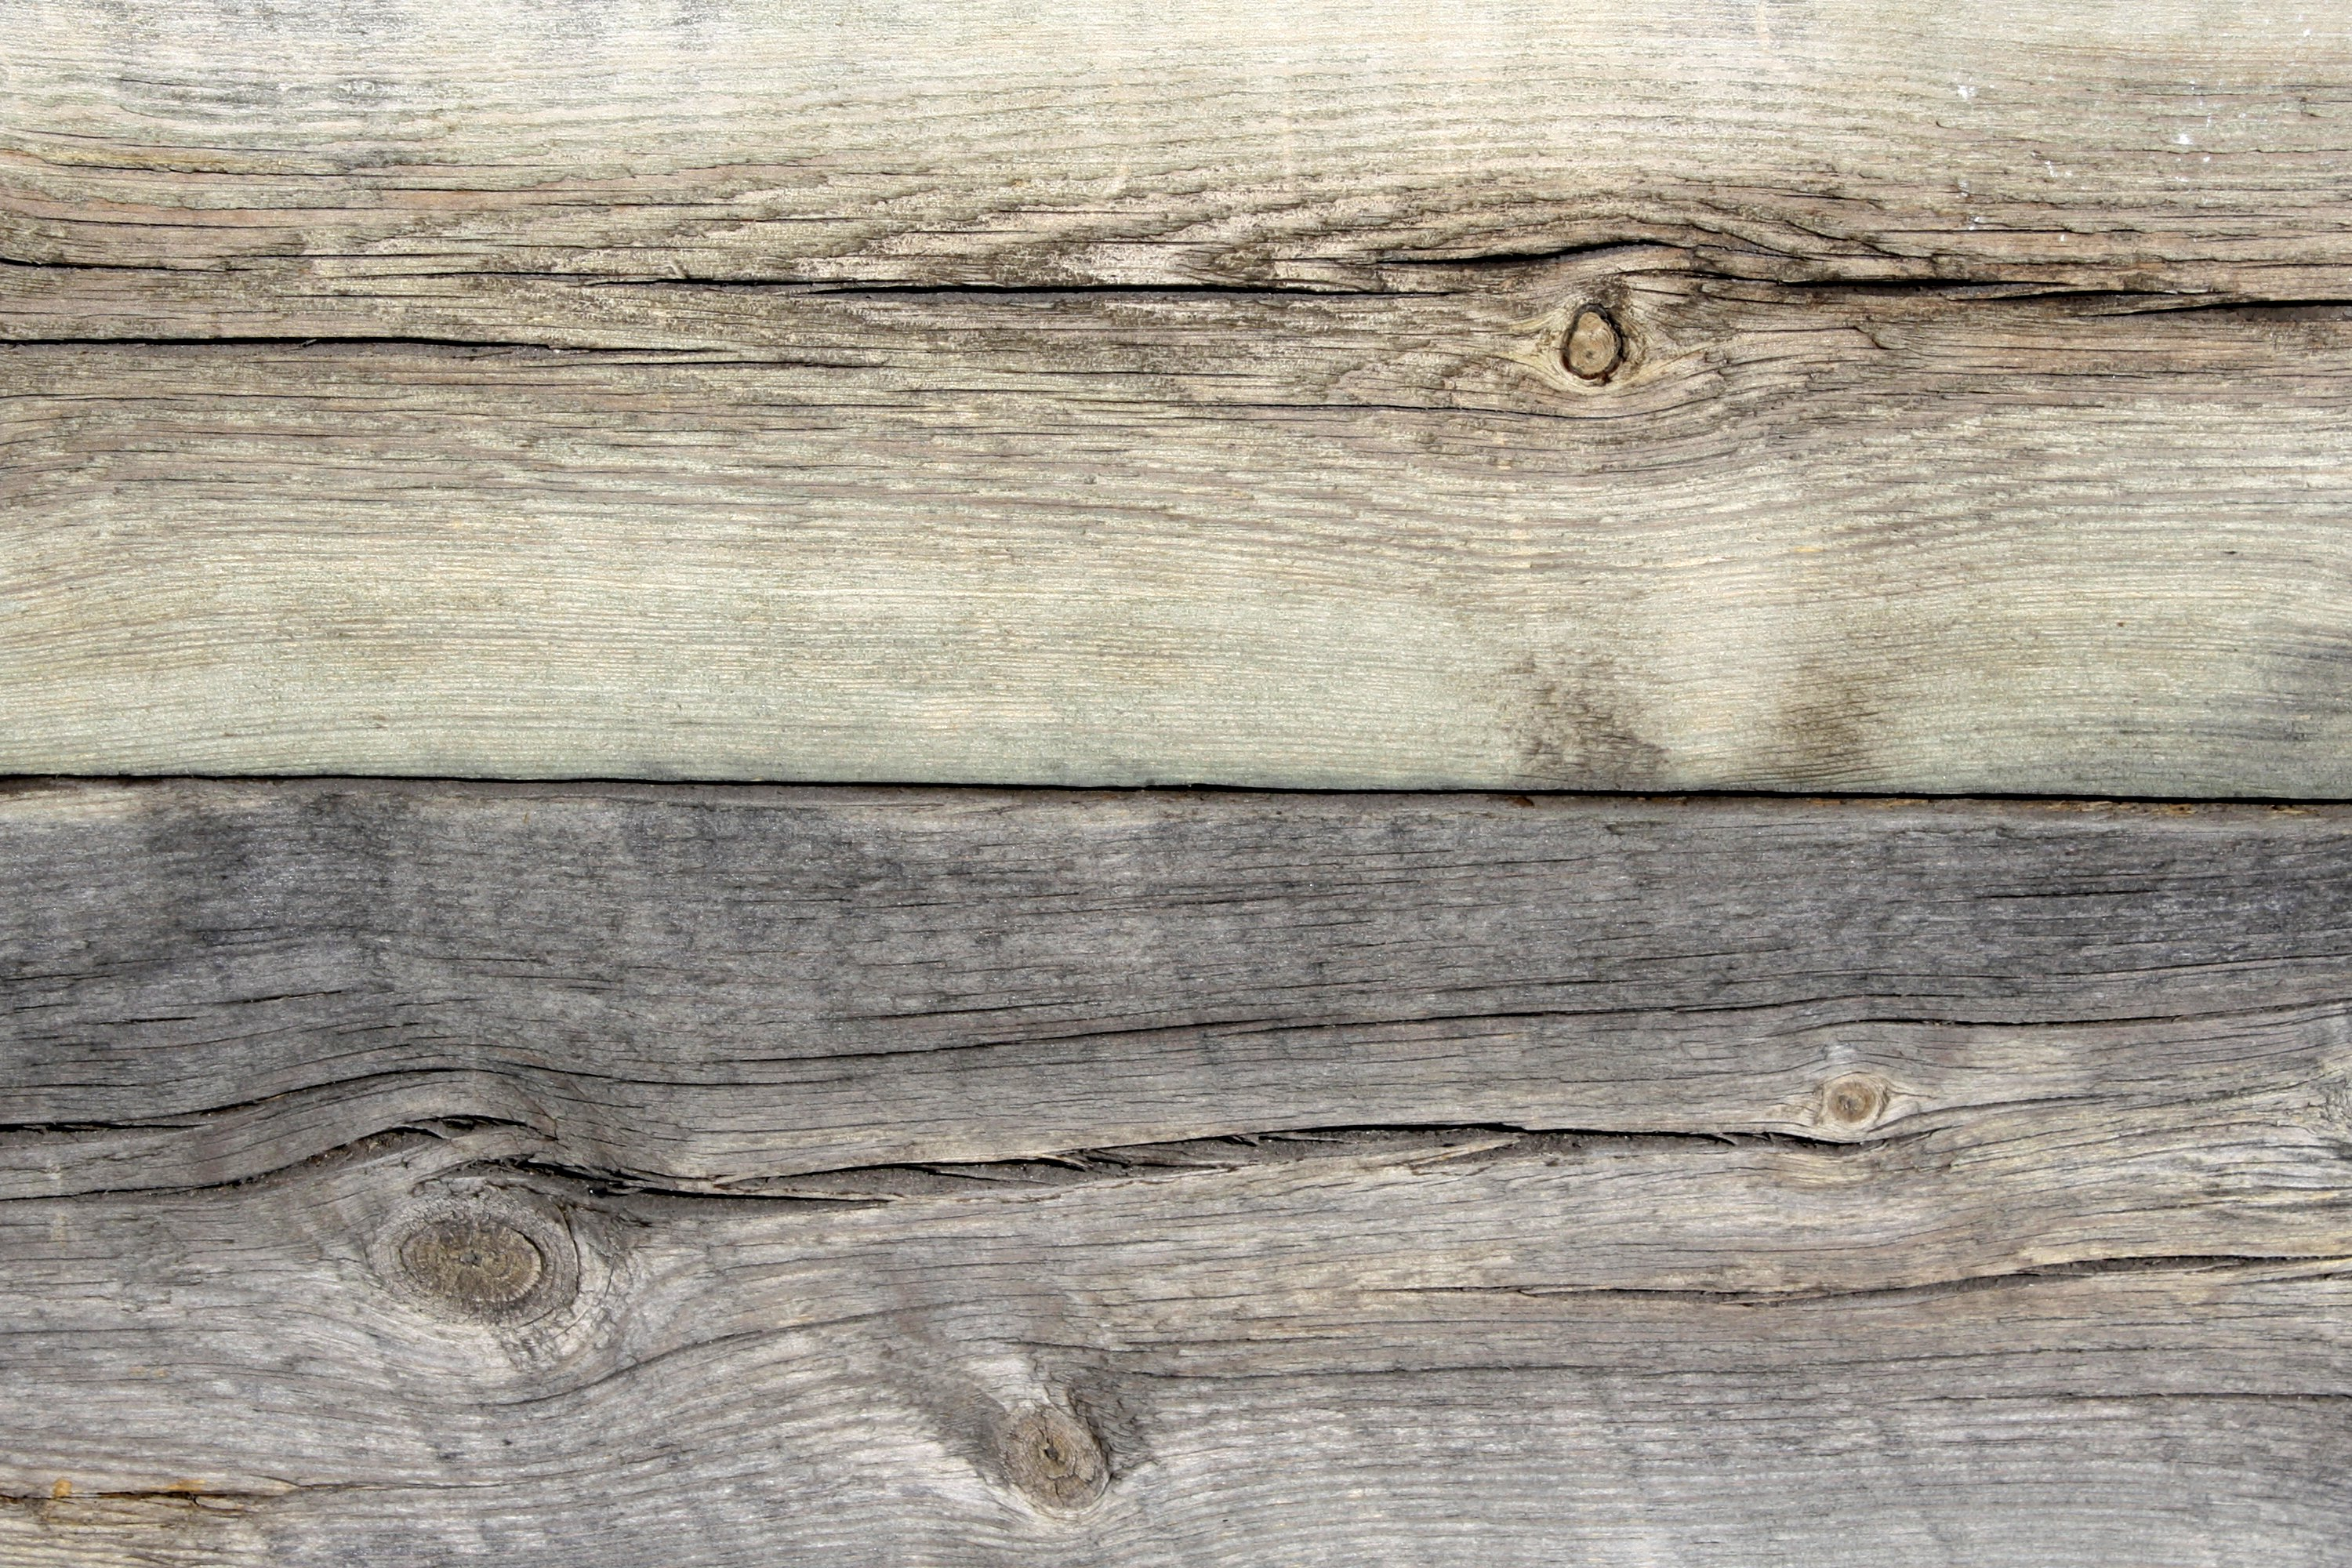 Weathered Wood Boards Close Up Texture   High Resolution Photo 3000x2000